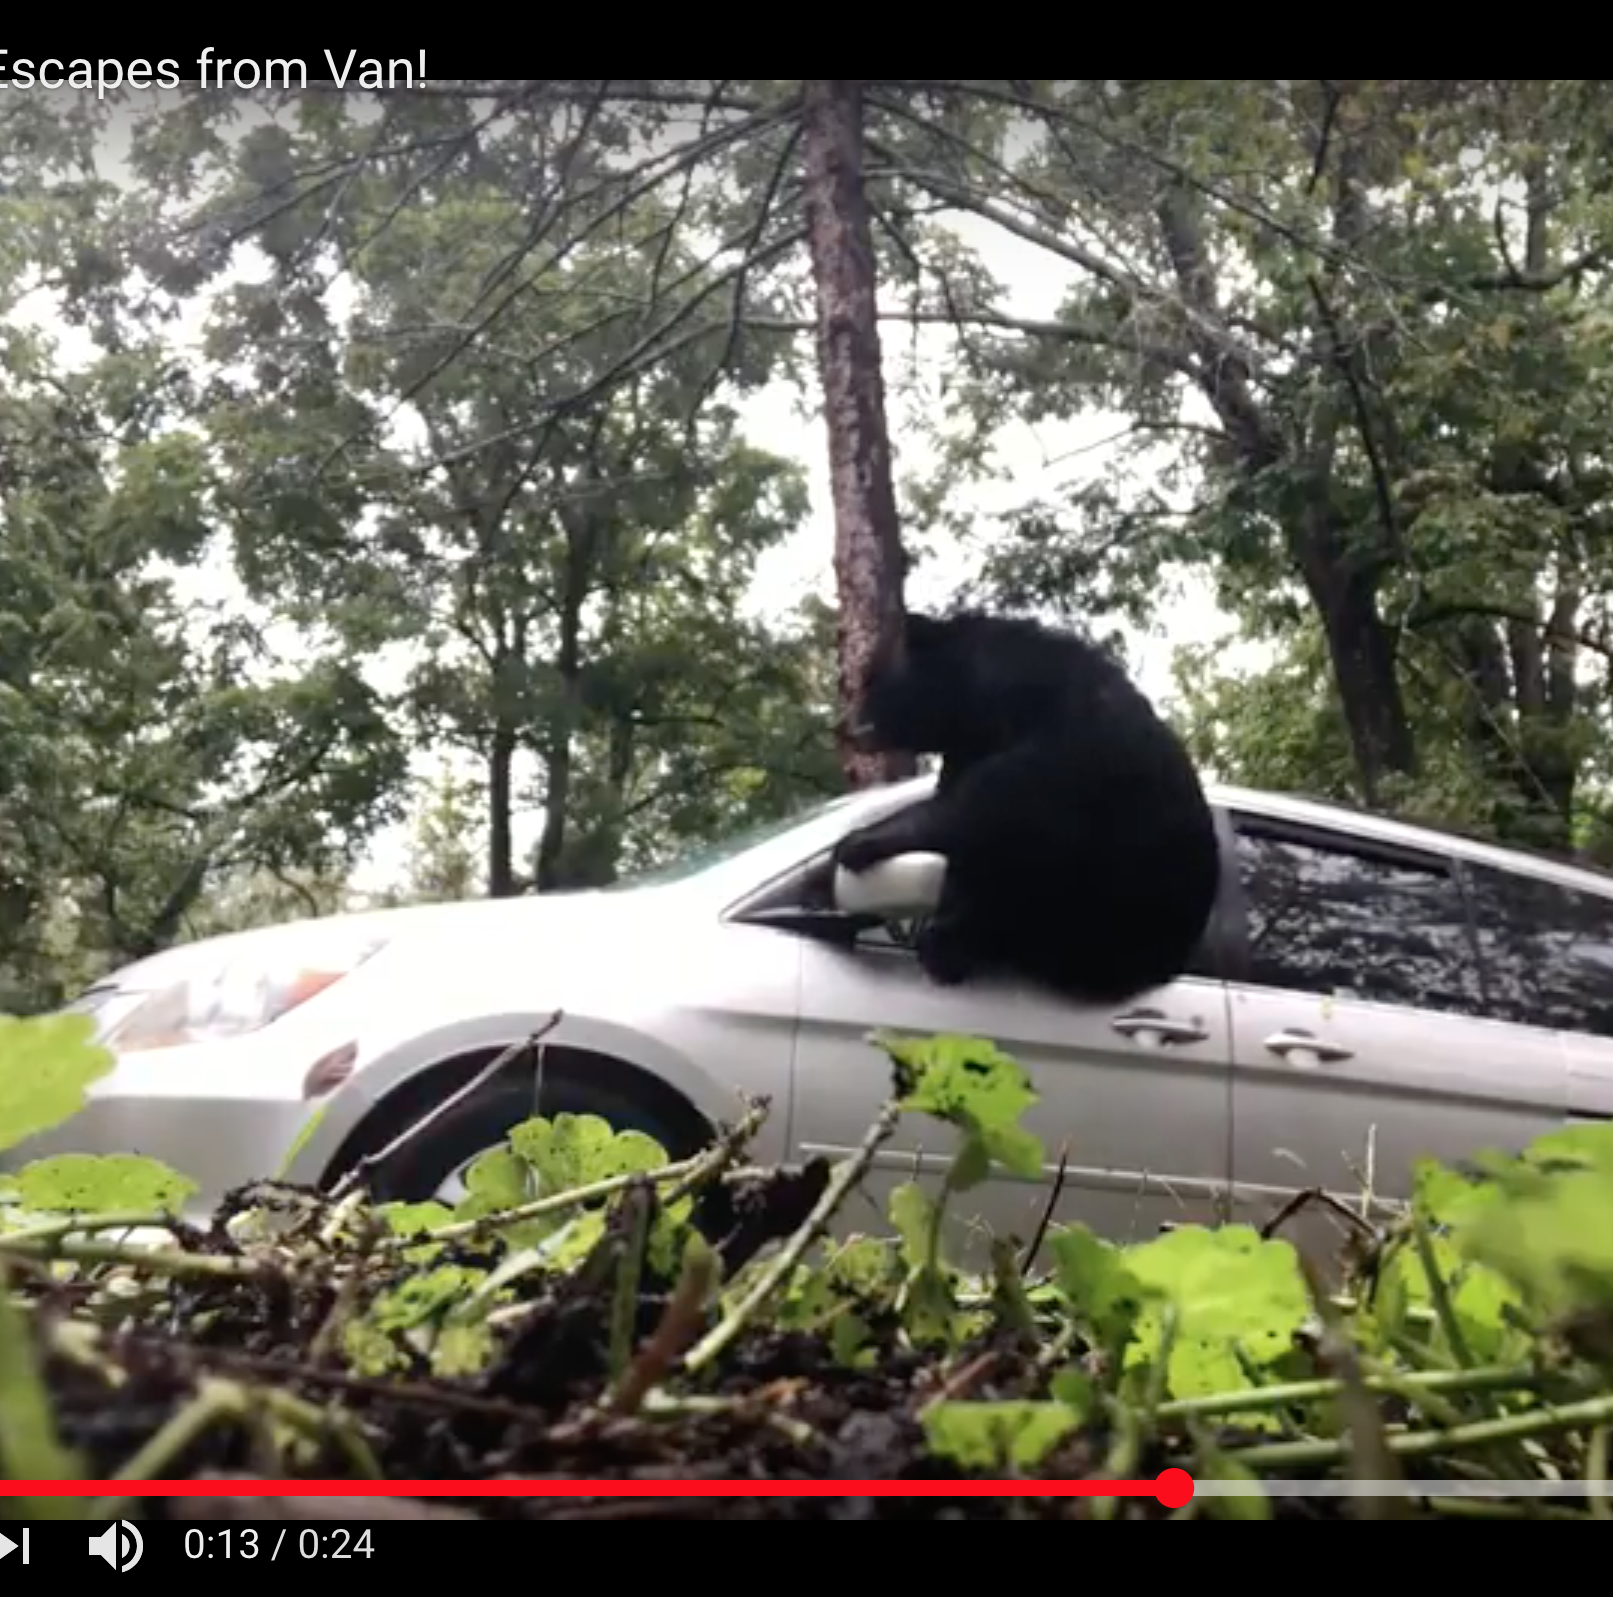 Bear trapped in van breaks out window, enters kitchen, eats muffin mix, skedaddles